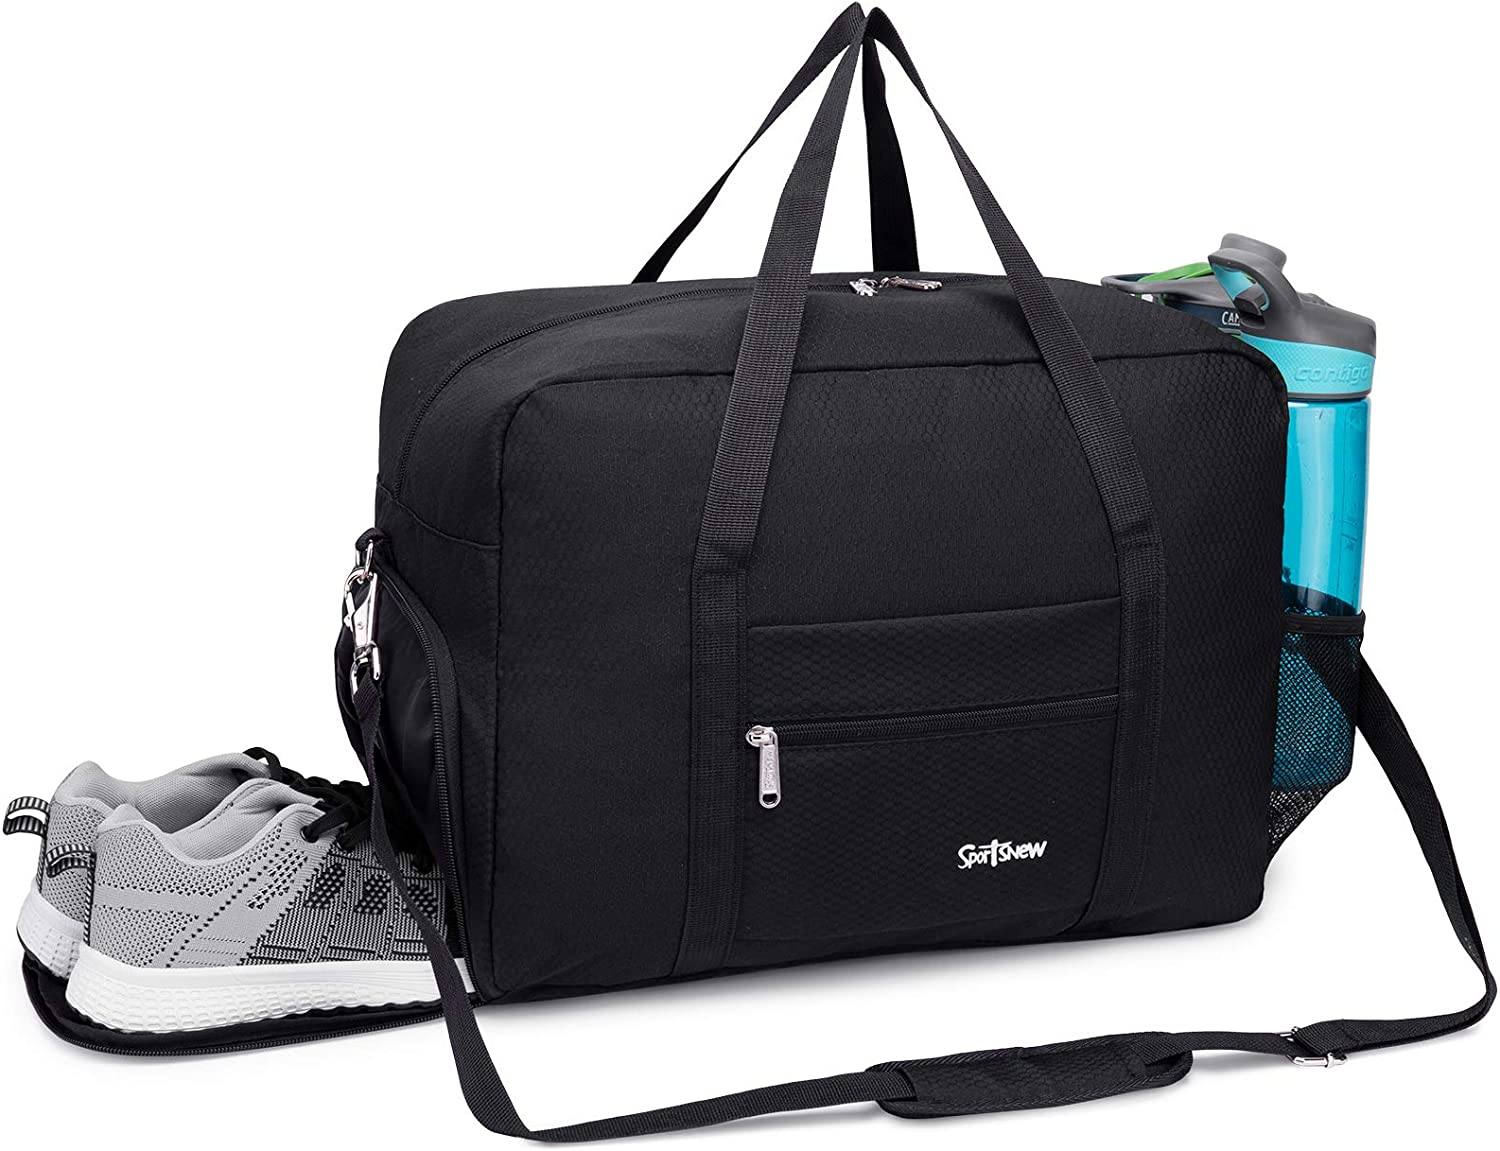 Travel Duffel Bag for Men and Women Lightweight Sports Gym Bag with Wet Pocket /& Shoes Compartment